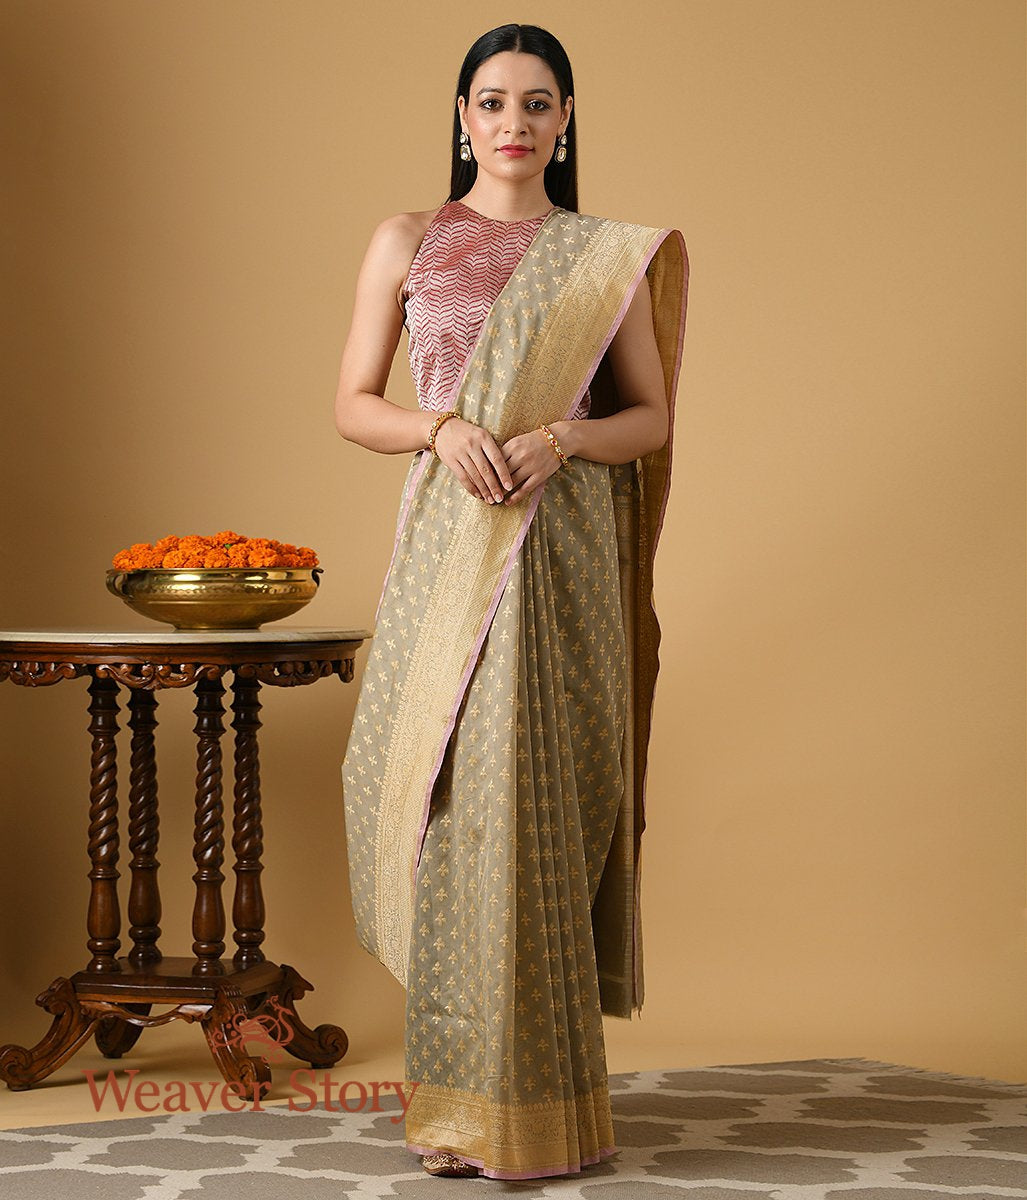 Handwoven Beige and Grey Banarasi Cotton Saree with Thread Booti